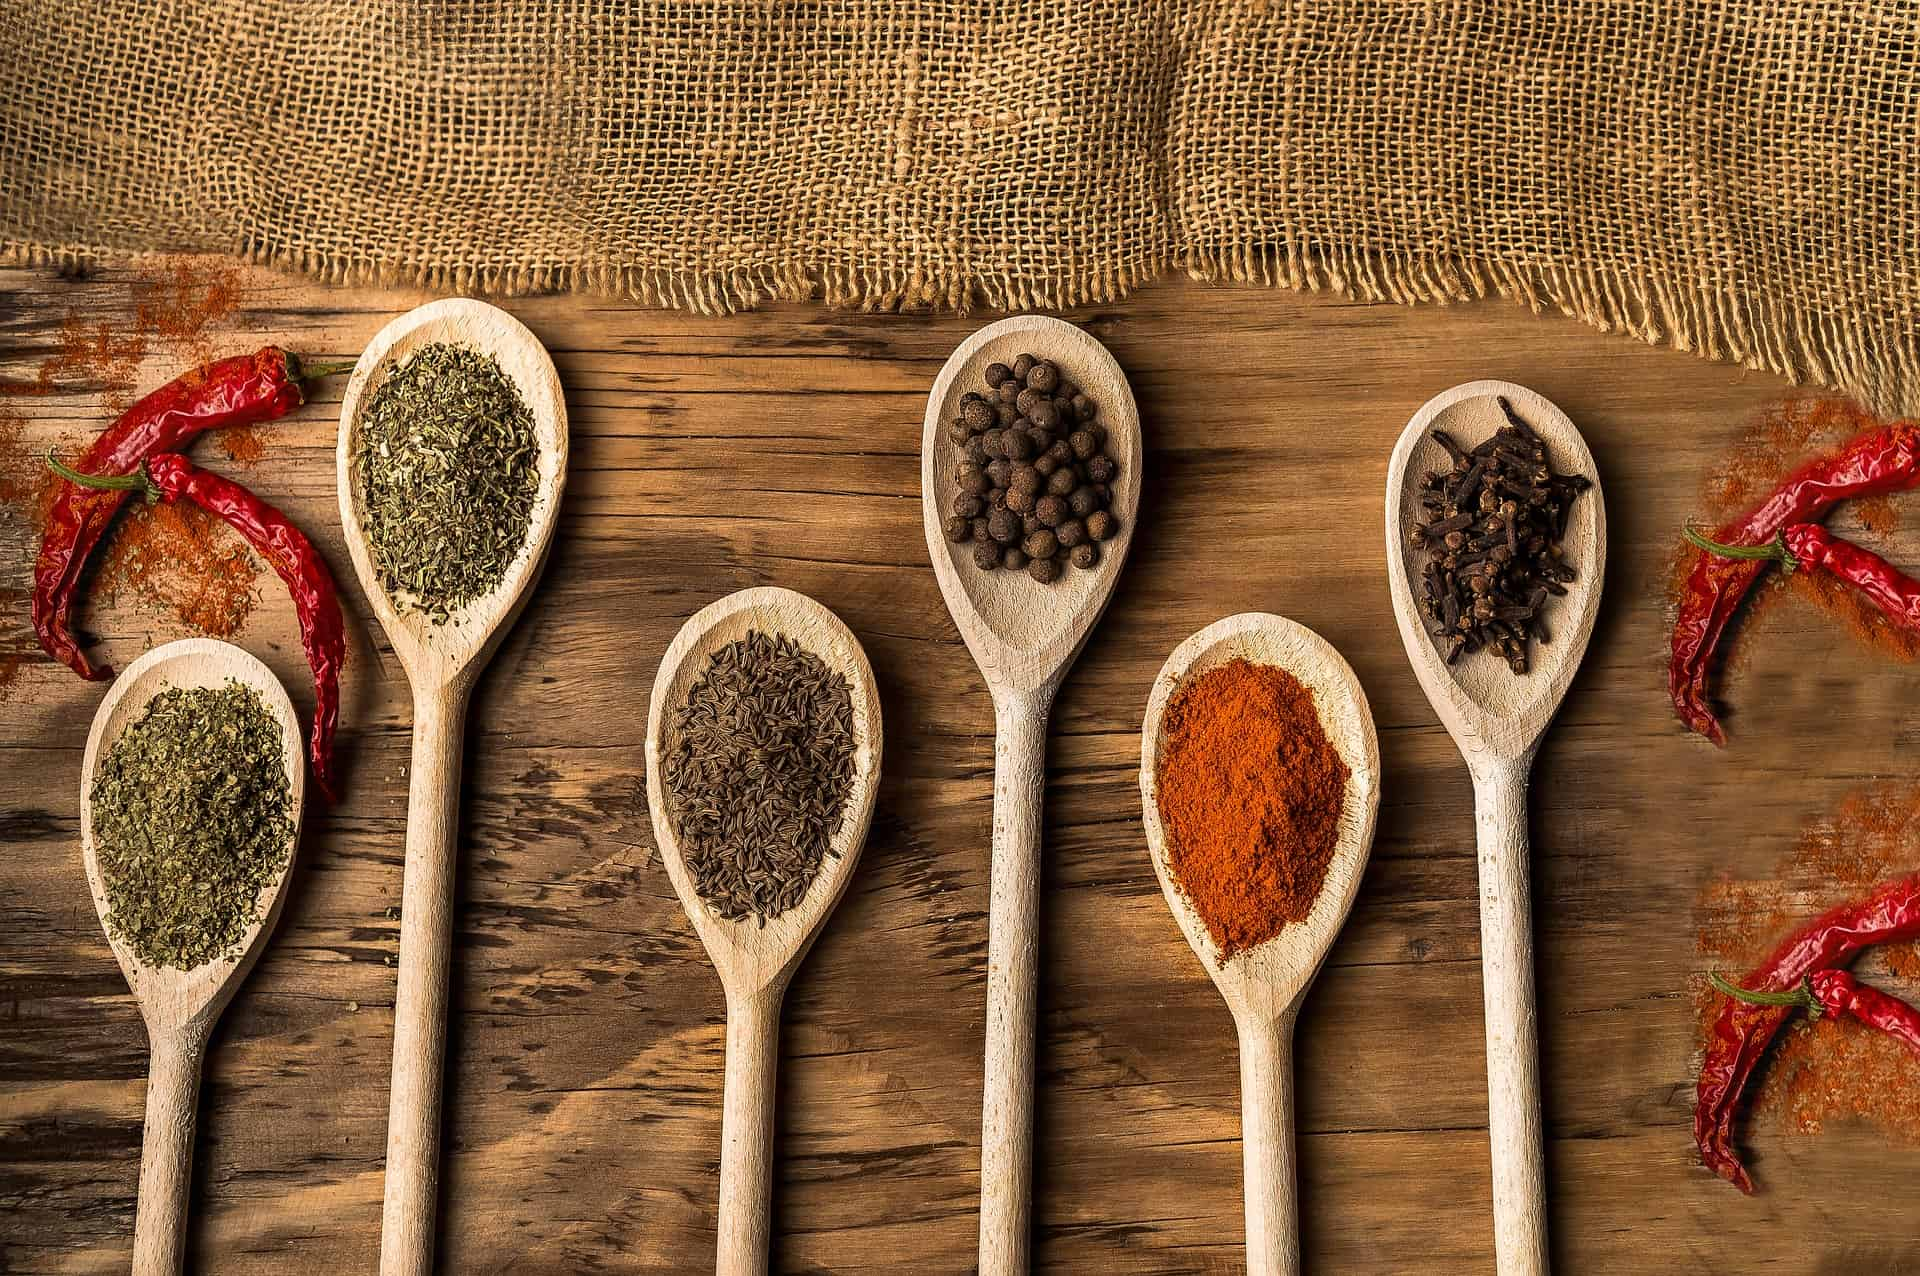 wooden spoons on cutting board filled with spices